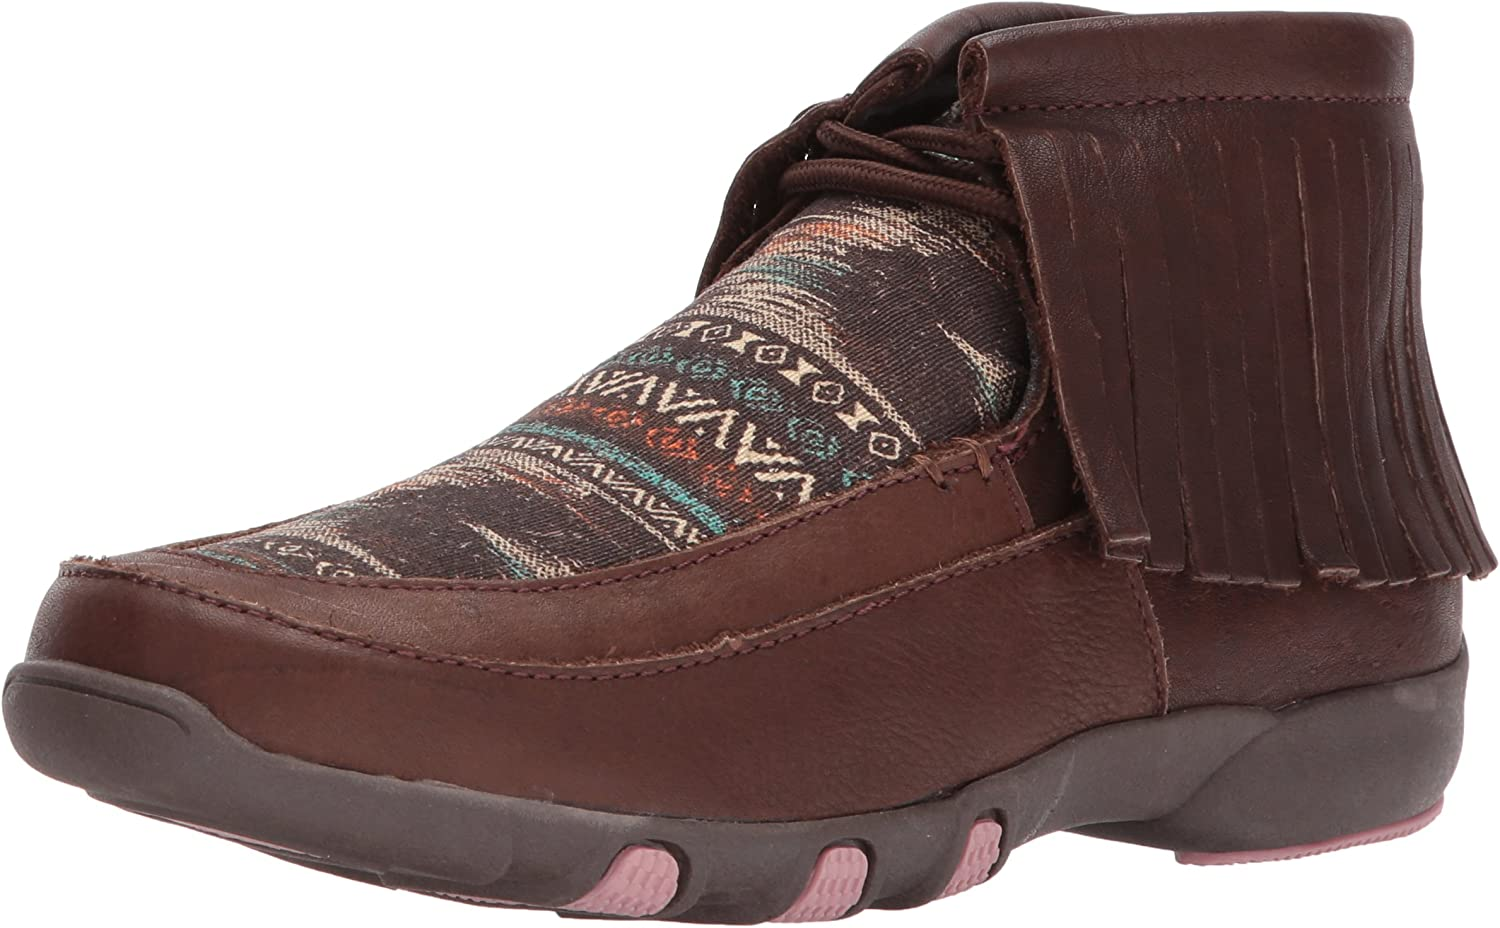 Sale Special Price ROPER Women's At the price of surprise Santa Fe Loafer Style Driving